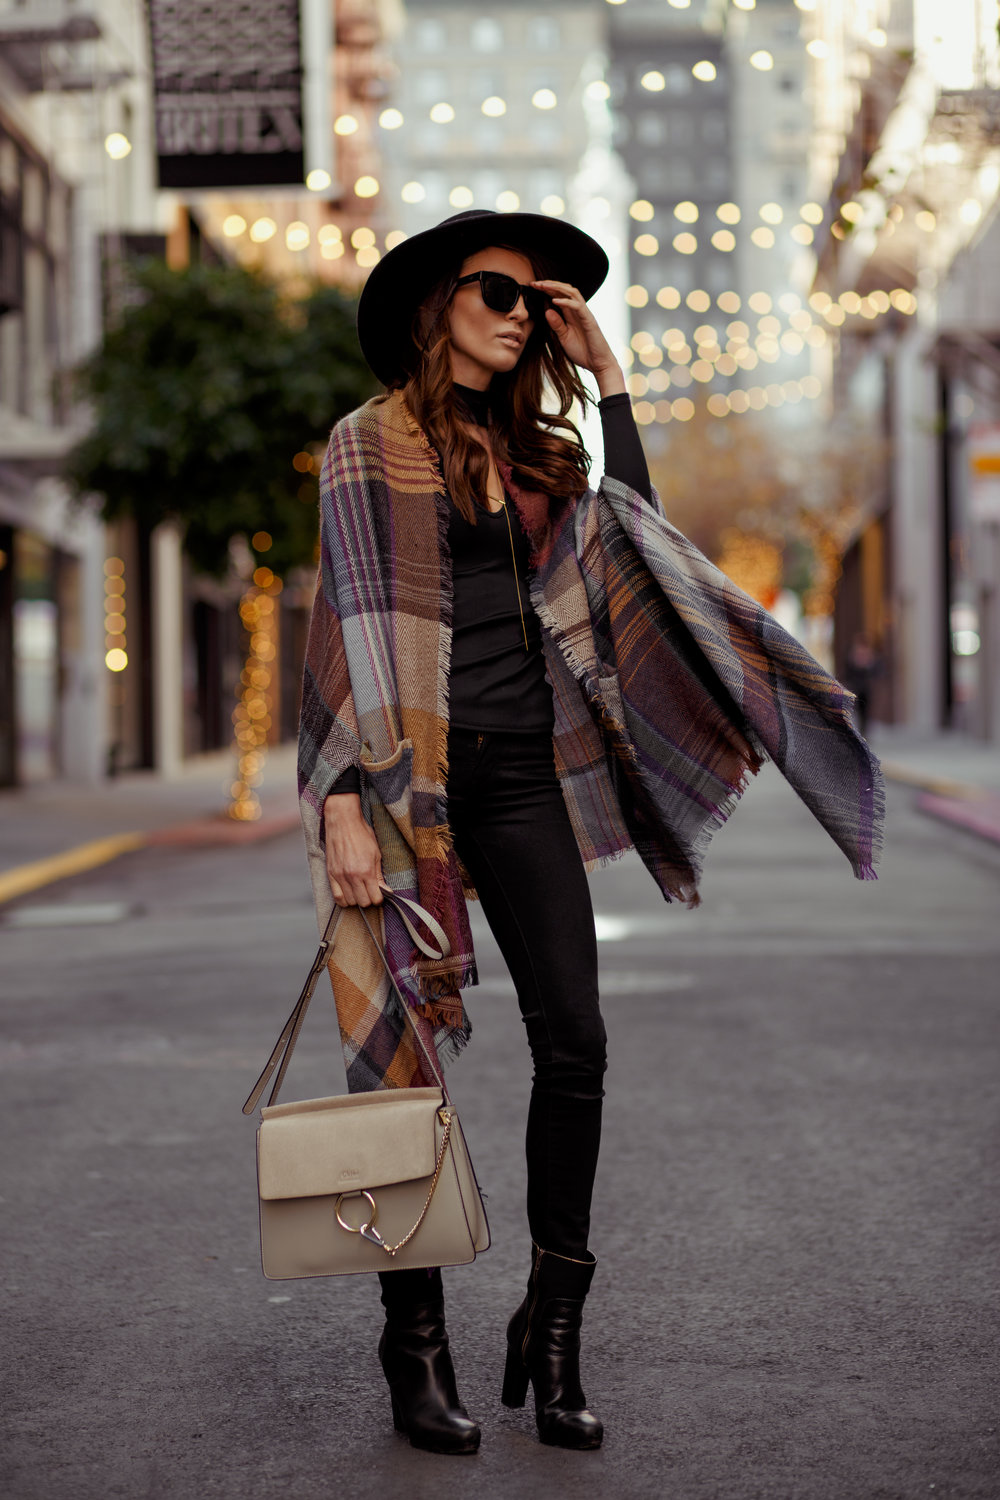 Elise_Gabriel_Fashion_Blogger_Model